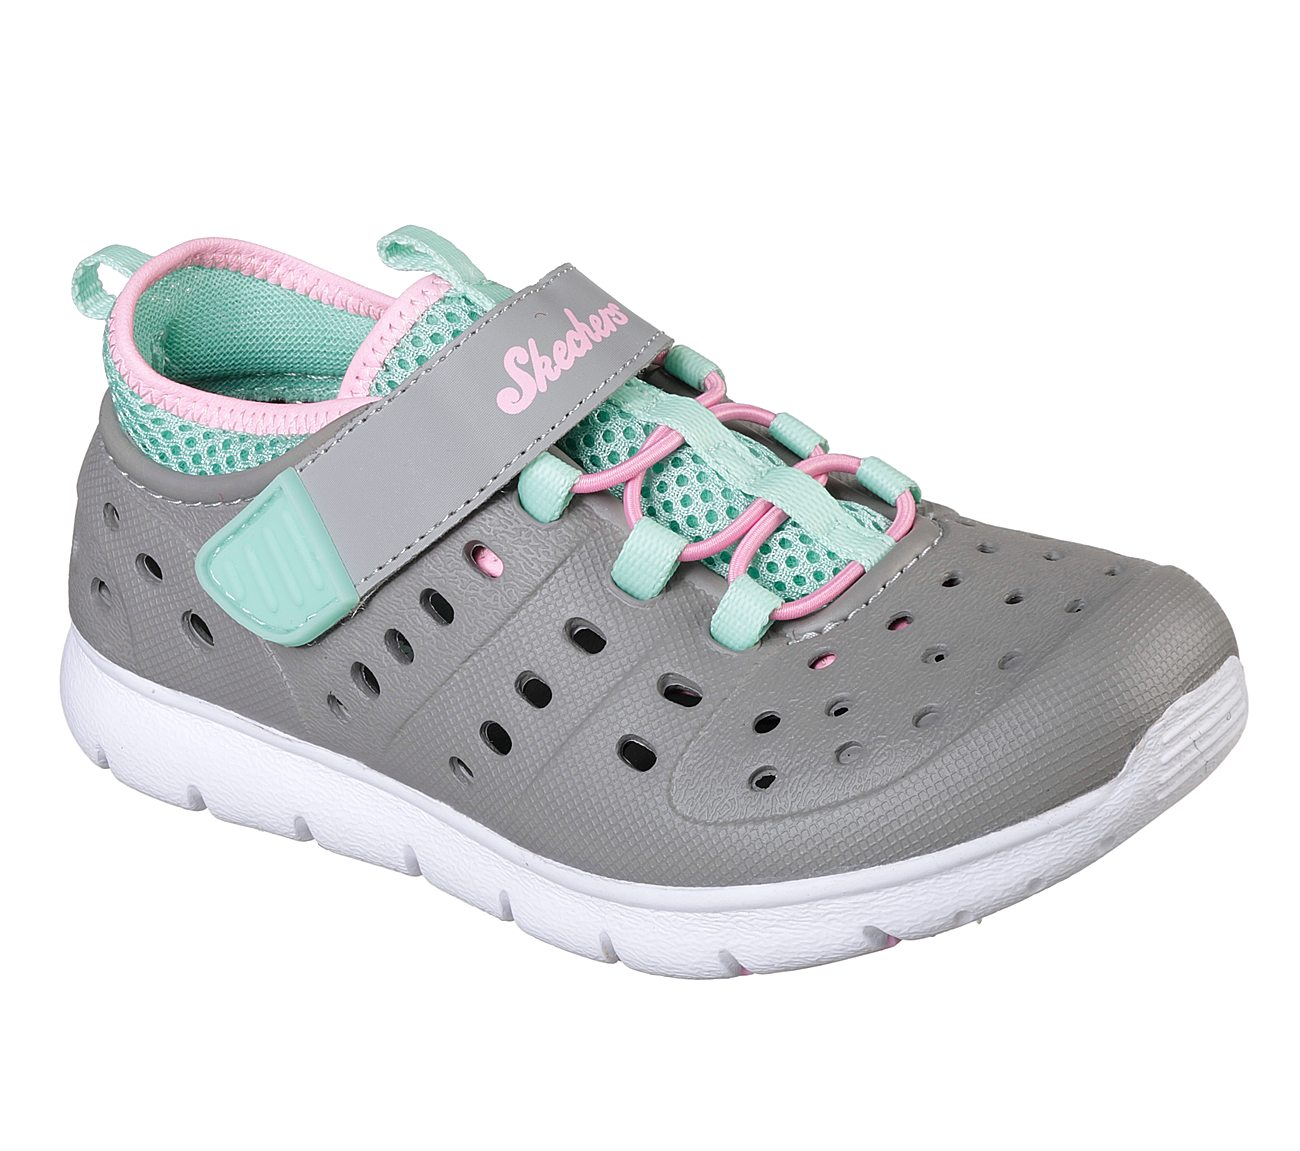 a5e5b3146add Buy SKECHERS Hydrozooms - Sunny Jumps USA Casuals Shoes only  34.00